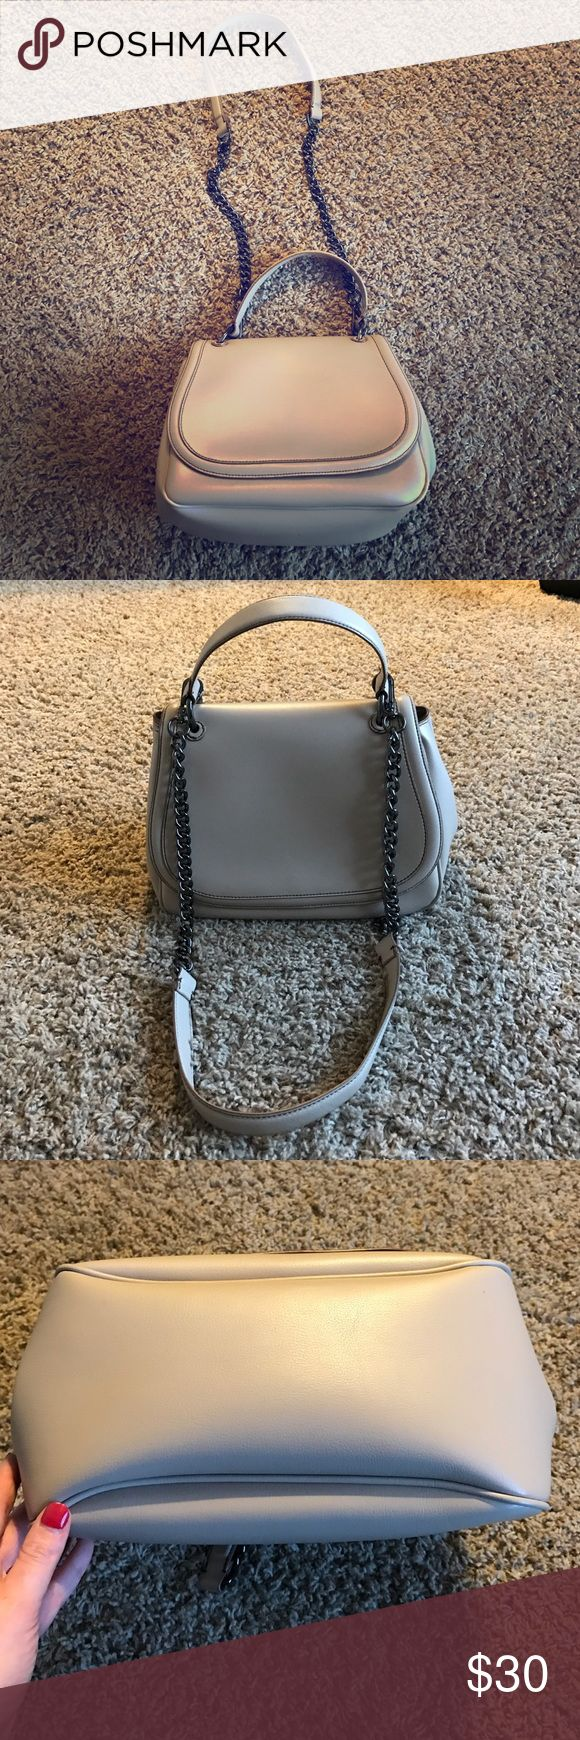 Gorgeous Zara purse Measurements first, ladies: 20 inch chain strap, 12 inches wide, 10 inches long. Secure clasp, inner zip pocket for things you want to hide, two small pockets and a larger storage pocket for stuff like tampons or your large collection of pens, who knows🤷🏻‍♀️😉! It's in PERFECT condition! No flaws! Just purchased from Zara and then I got a new bag for xmas! Zara Bags